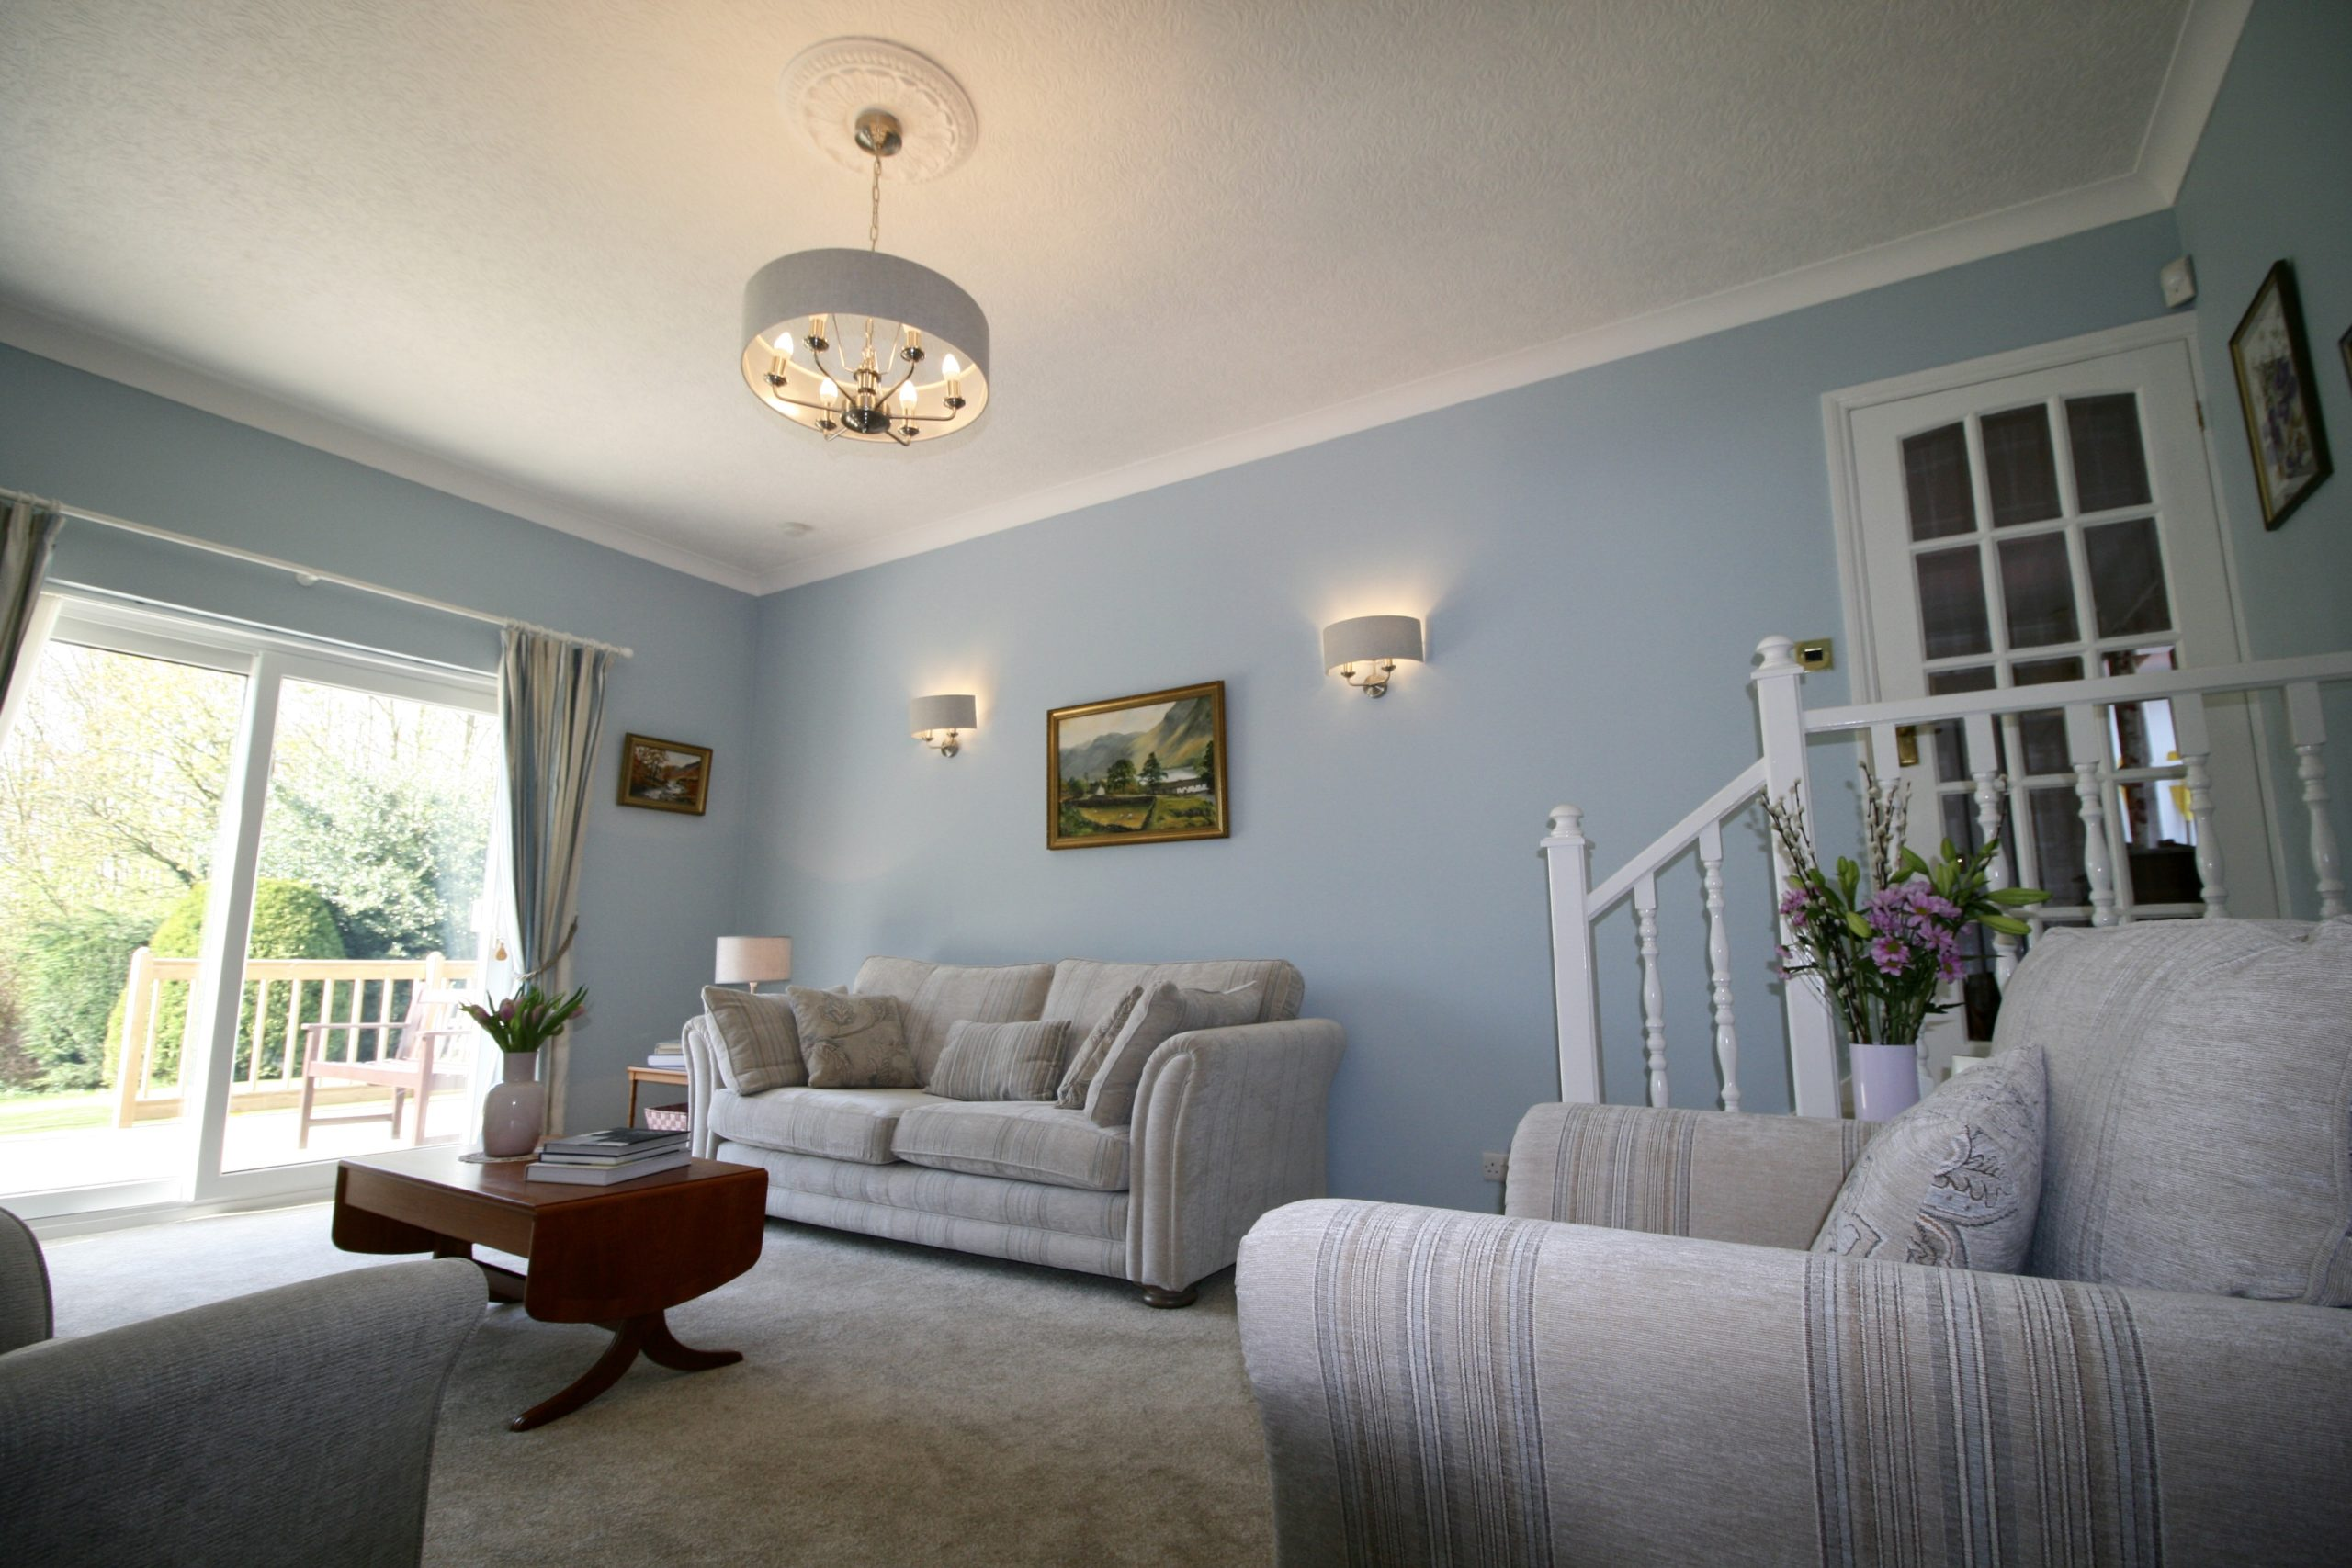 Living room with Valspar Windblown blue and linen colour scheme with pale pink accents and Laura Ashley soft furnishings